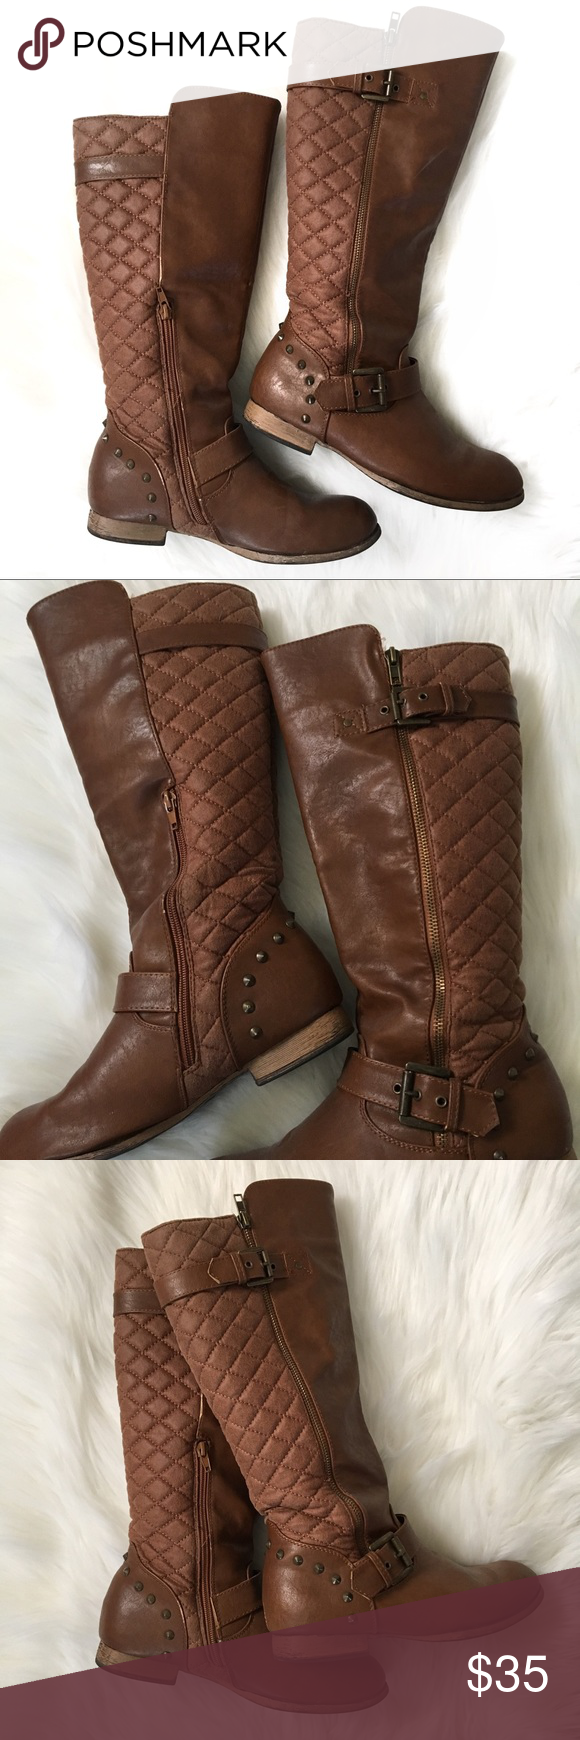 Brown studded riding boots Fashionable distressed riding